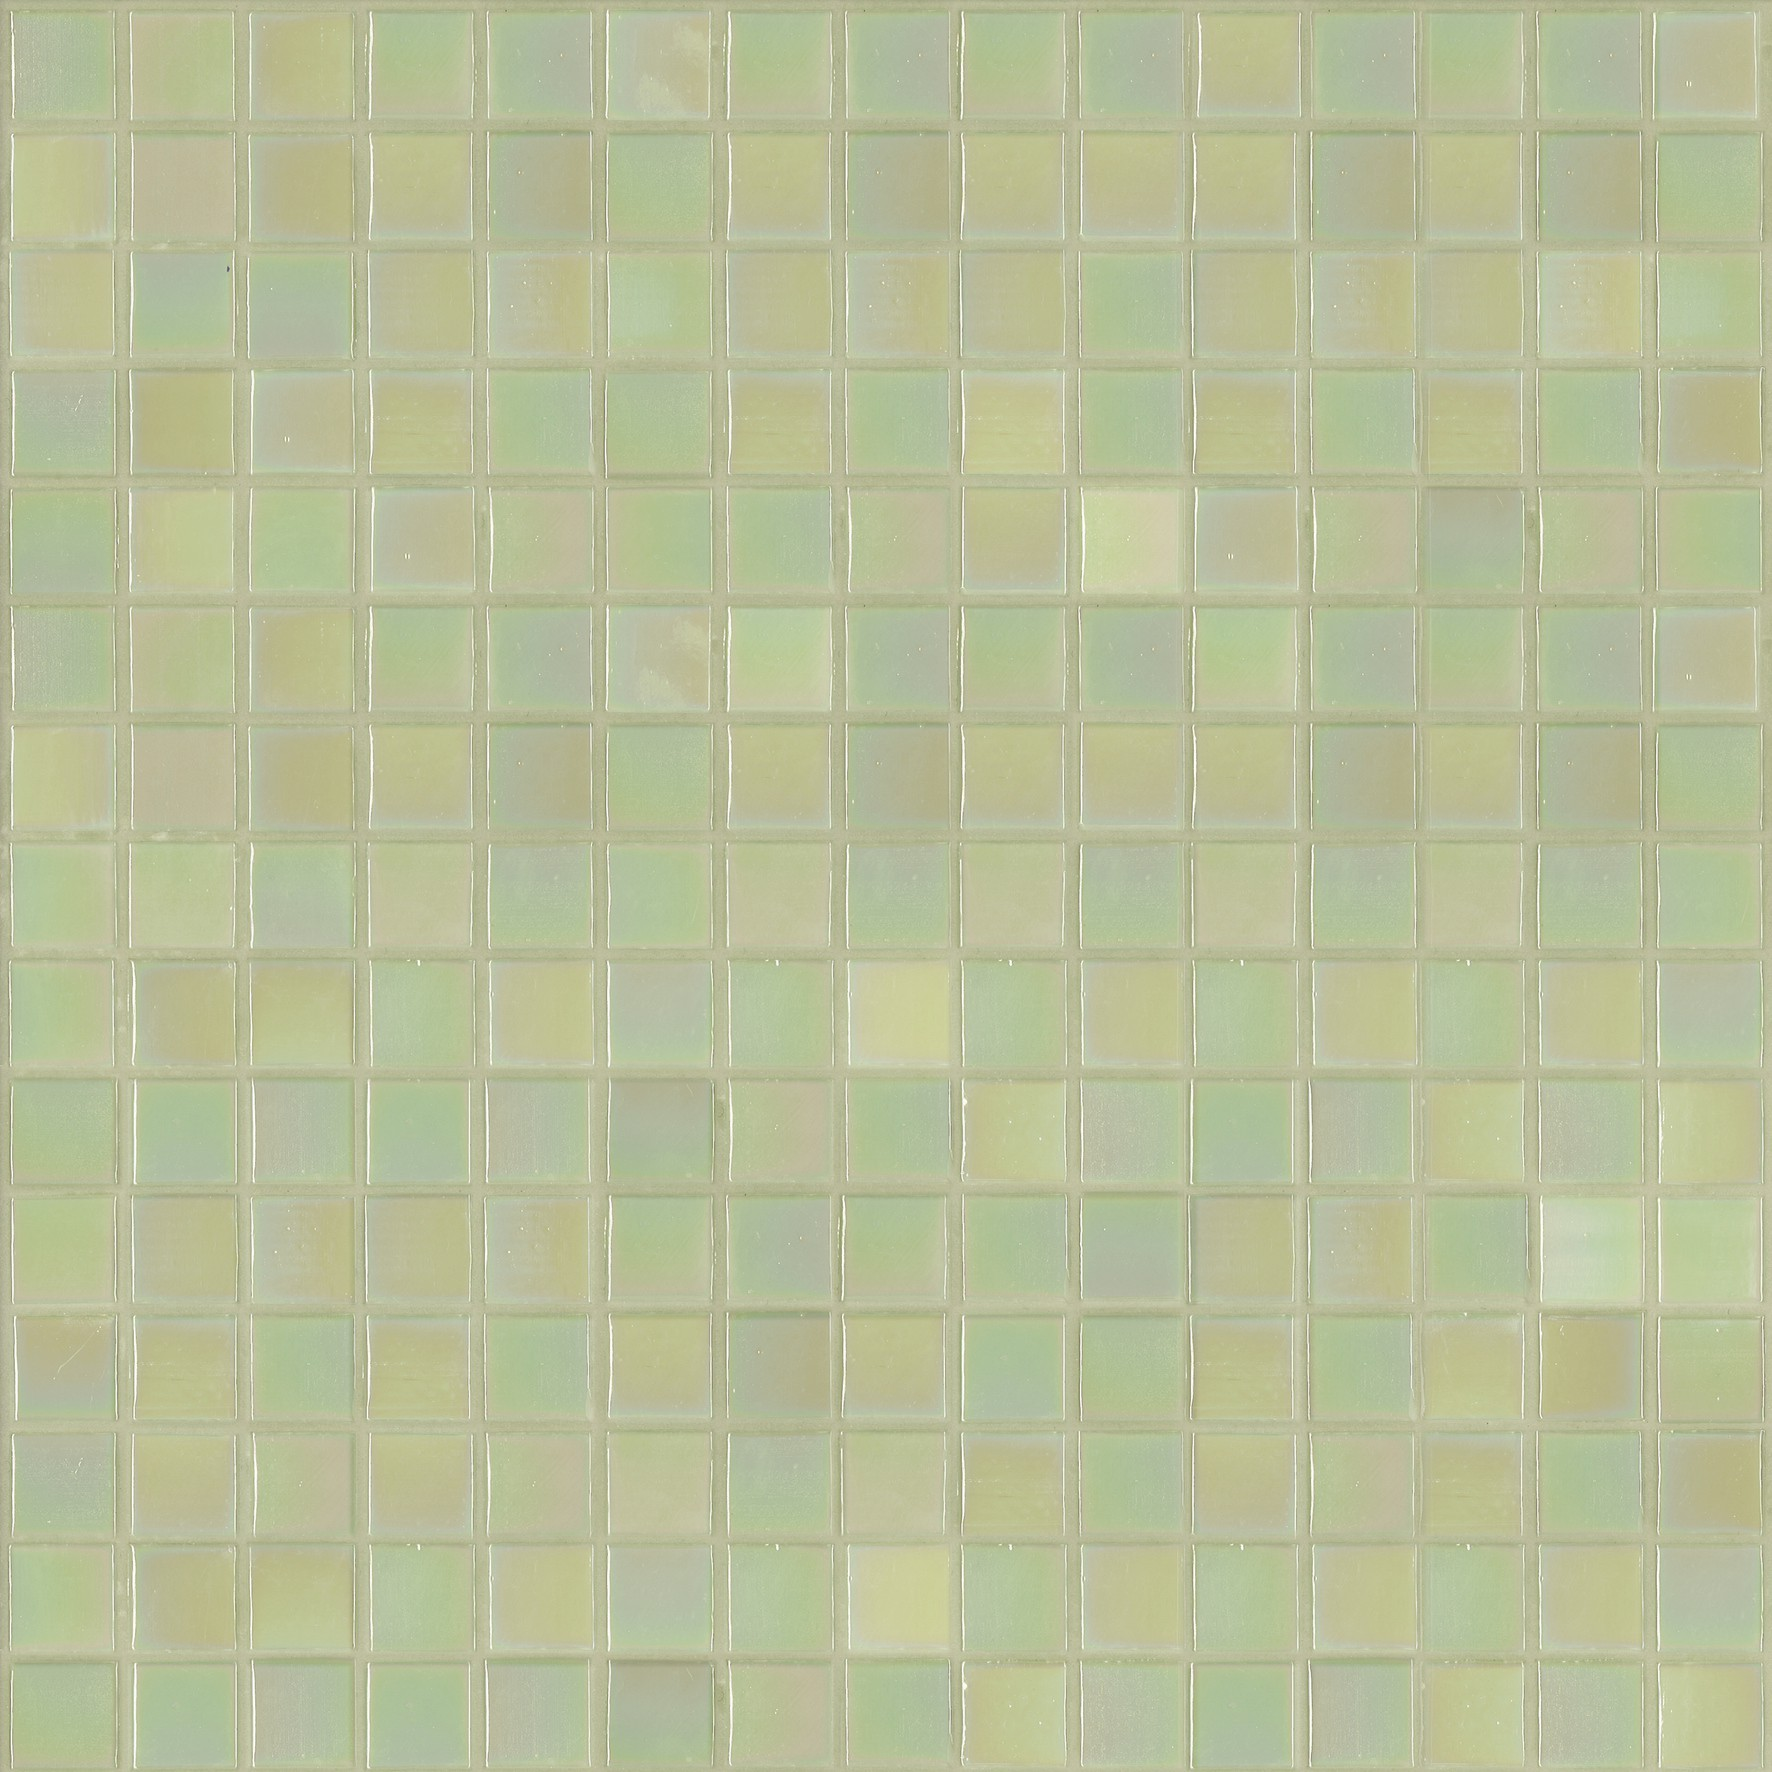 "Bisazza Gloss GL 06 Glass Mosaic Tile 20mm - 3/4"", 1 sheet"